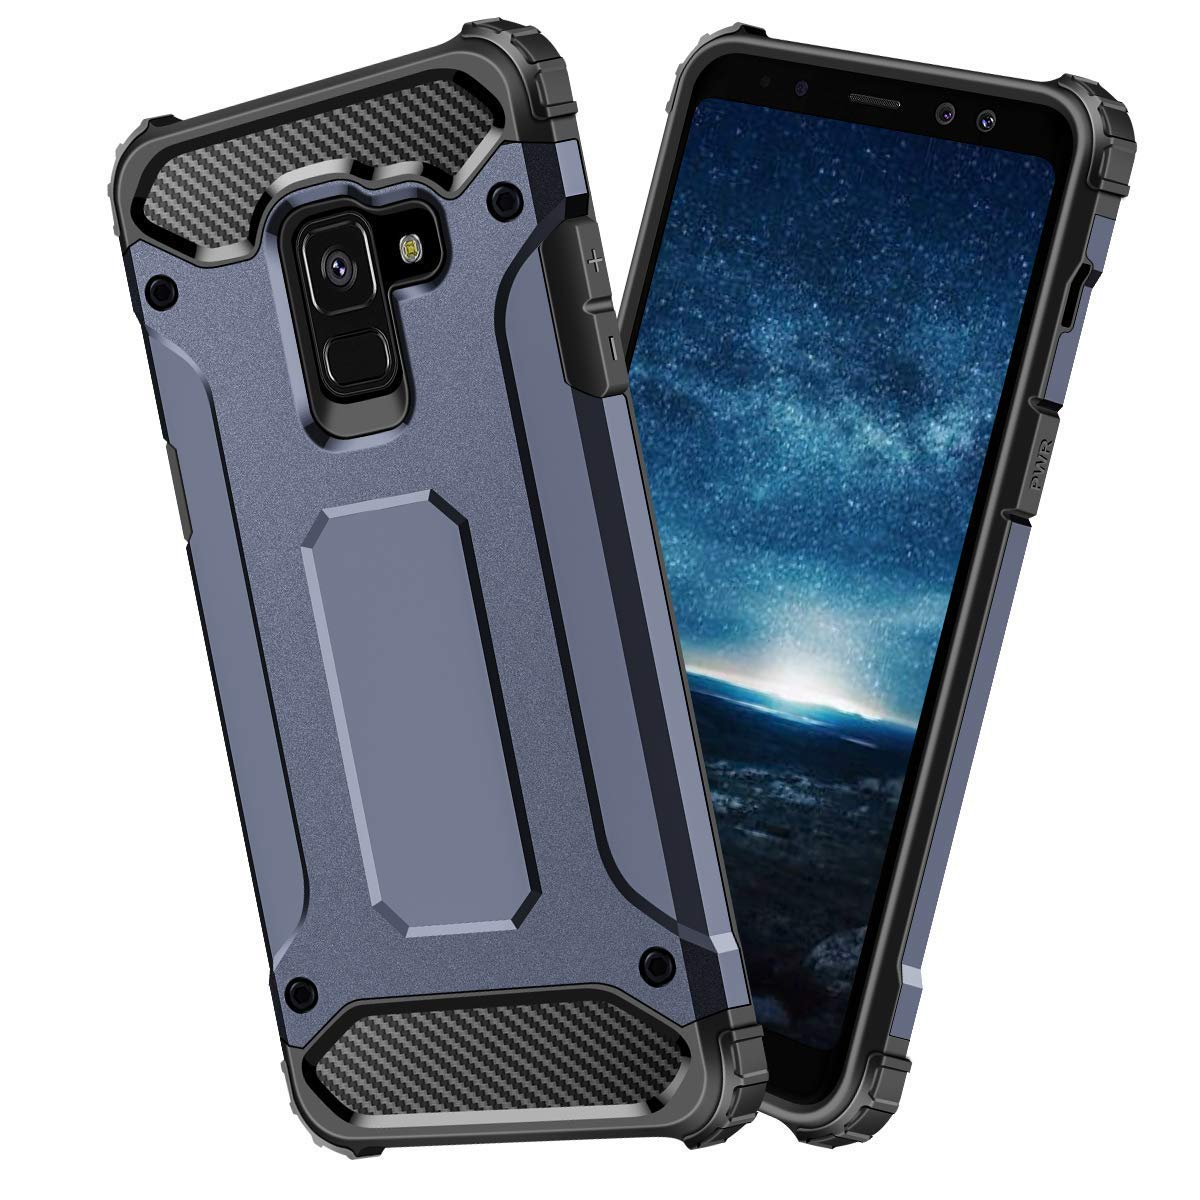 size 40 5bbae d66d0 Amazon.com: Protective Galaxy A8/A8 Plus Thin Slim case,thinest Best ...